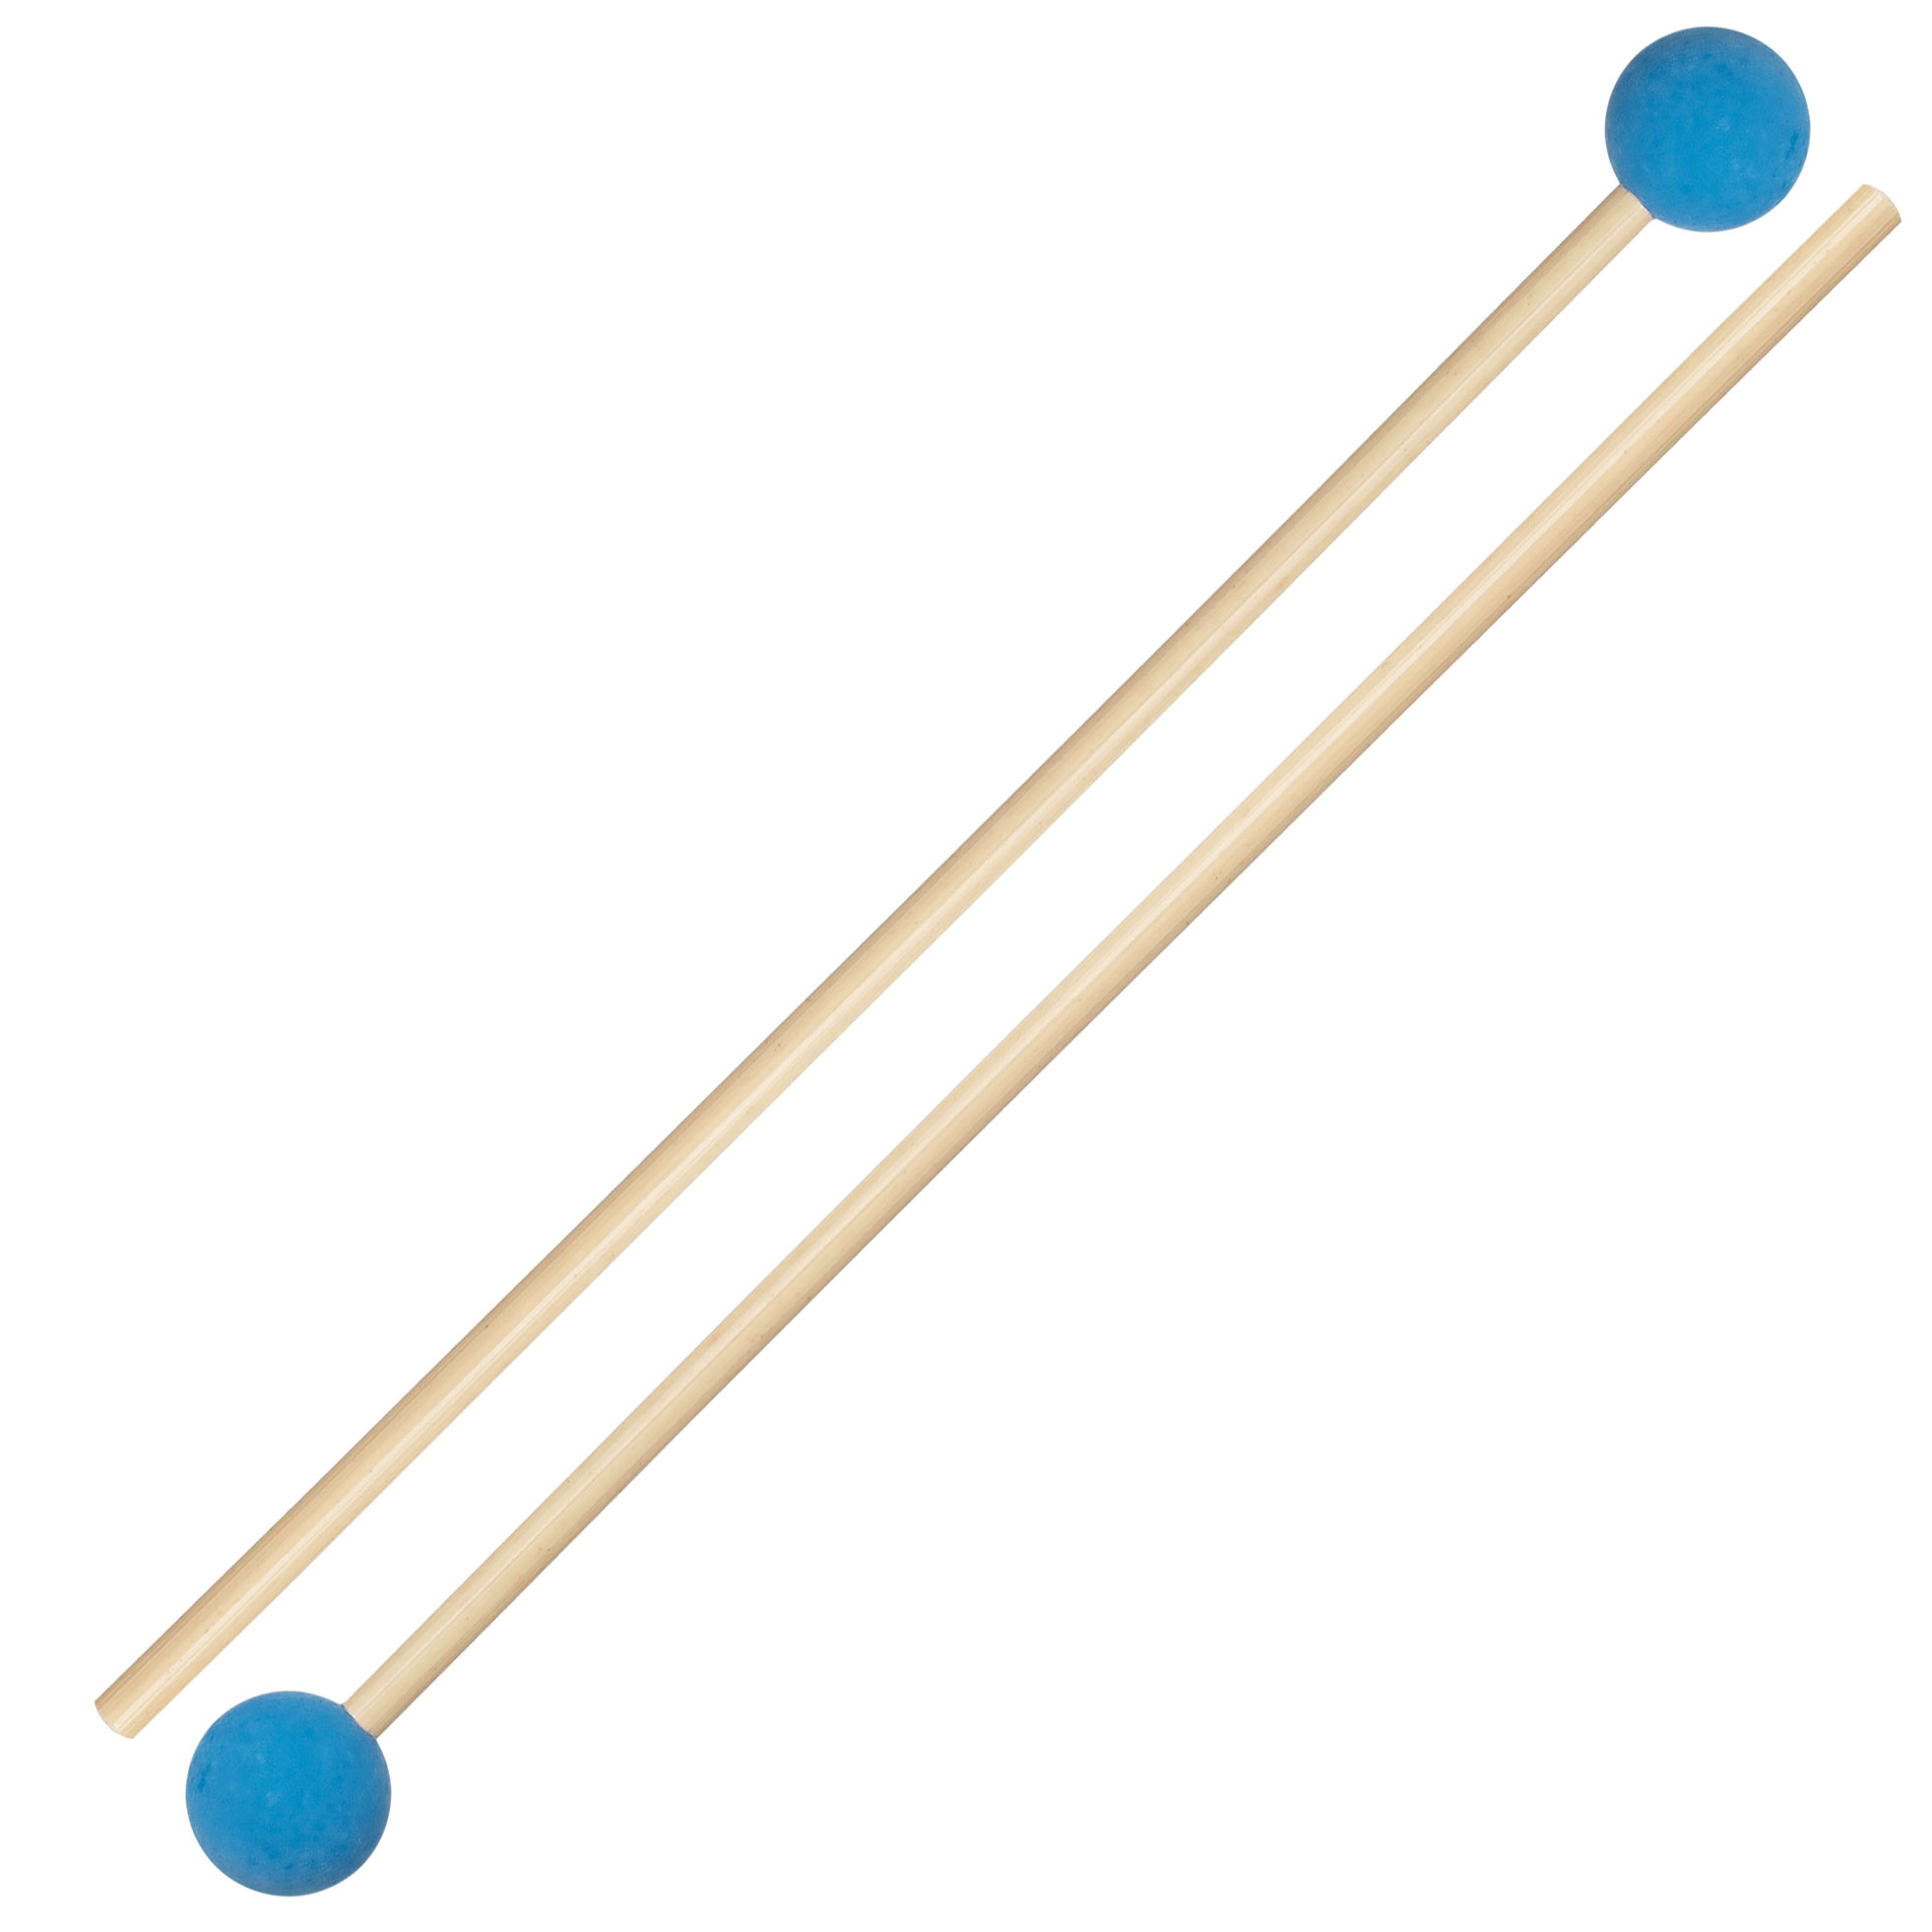 Xylophone clipart stick, Xylophone stick Transparent FREE.